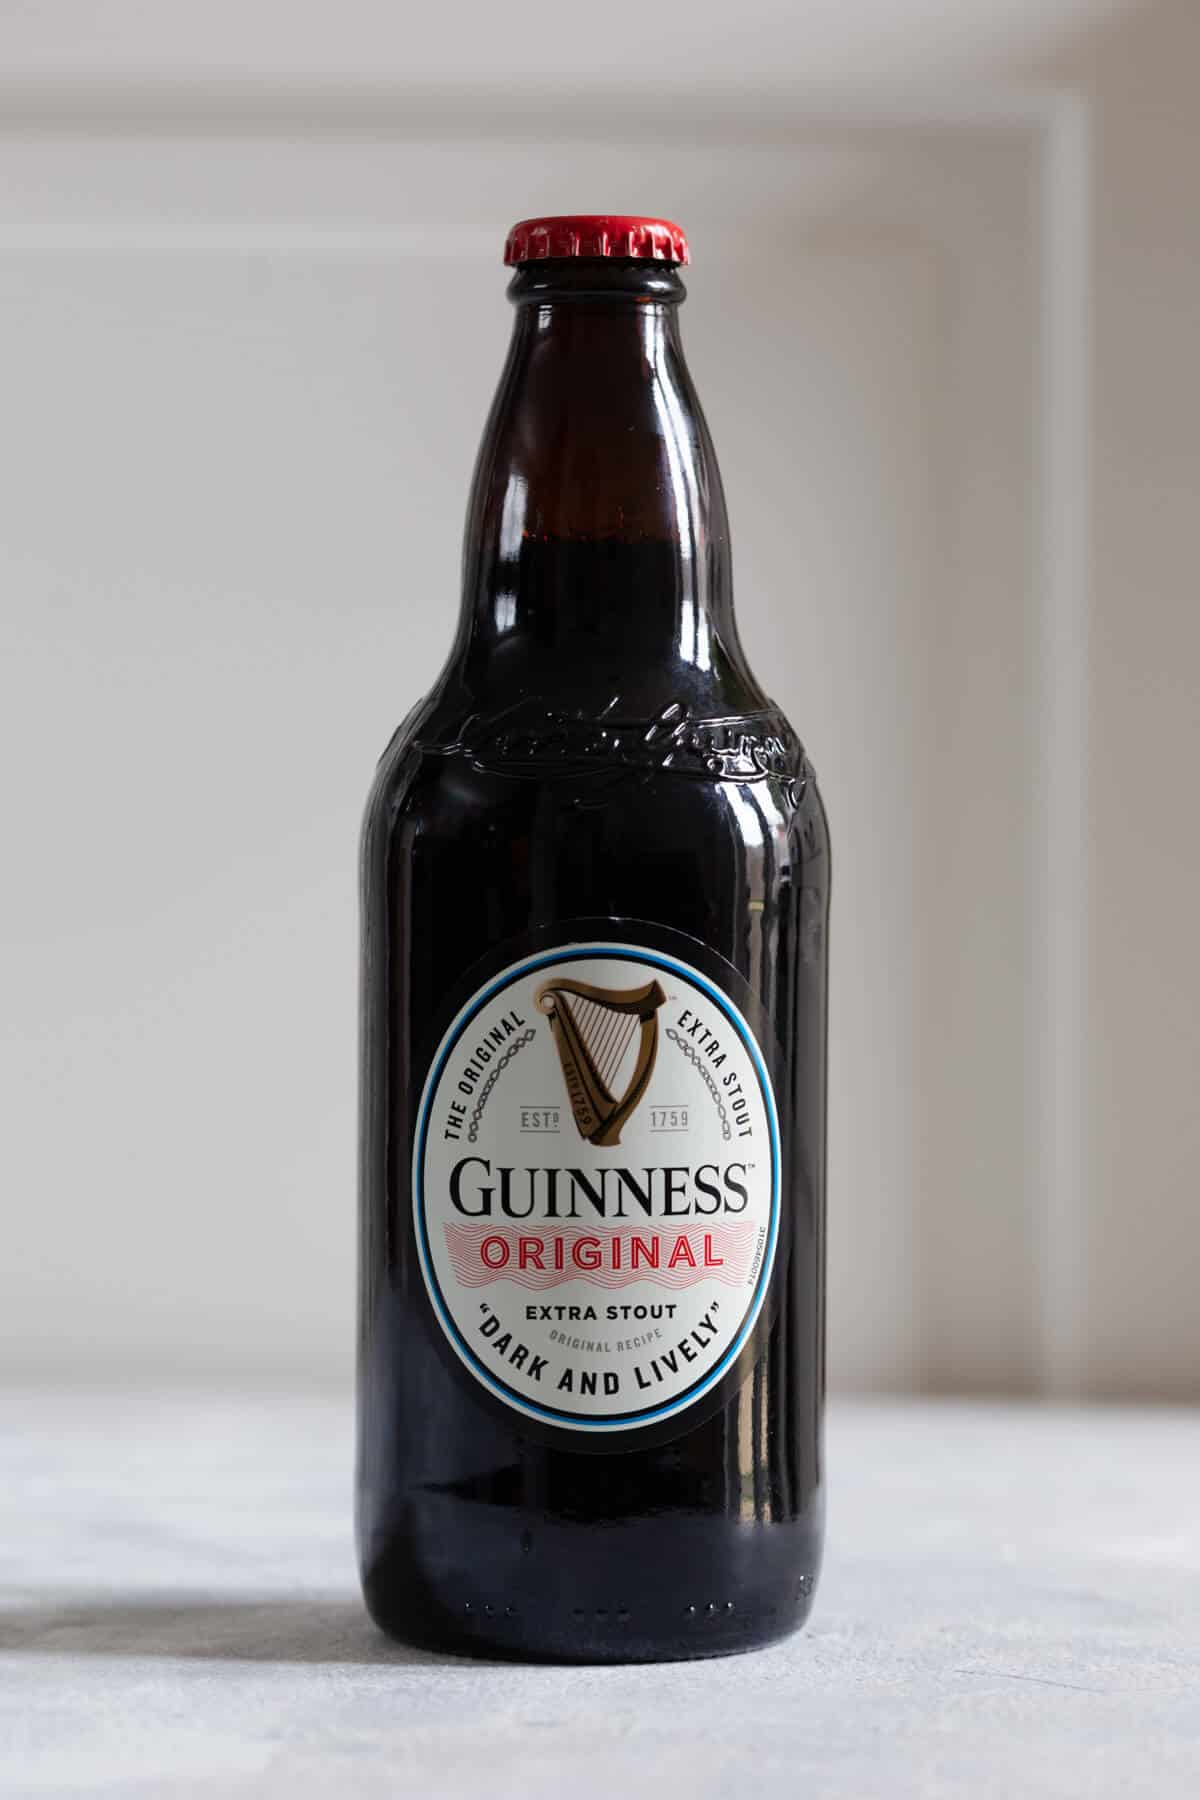 straight ahead close up photo of a bottle of Guinness